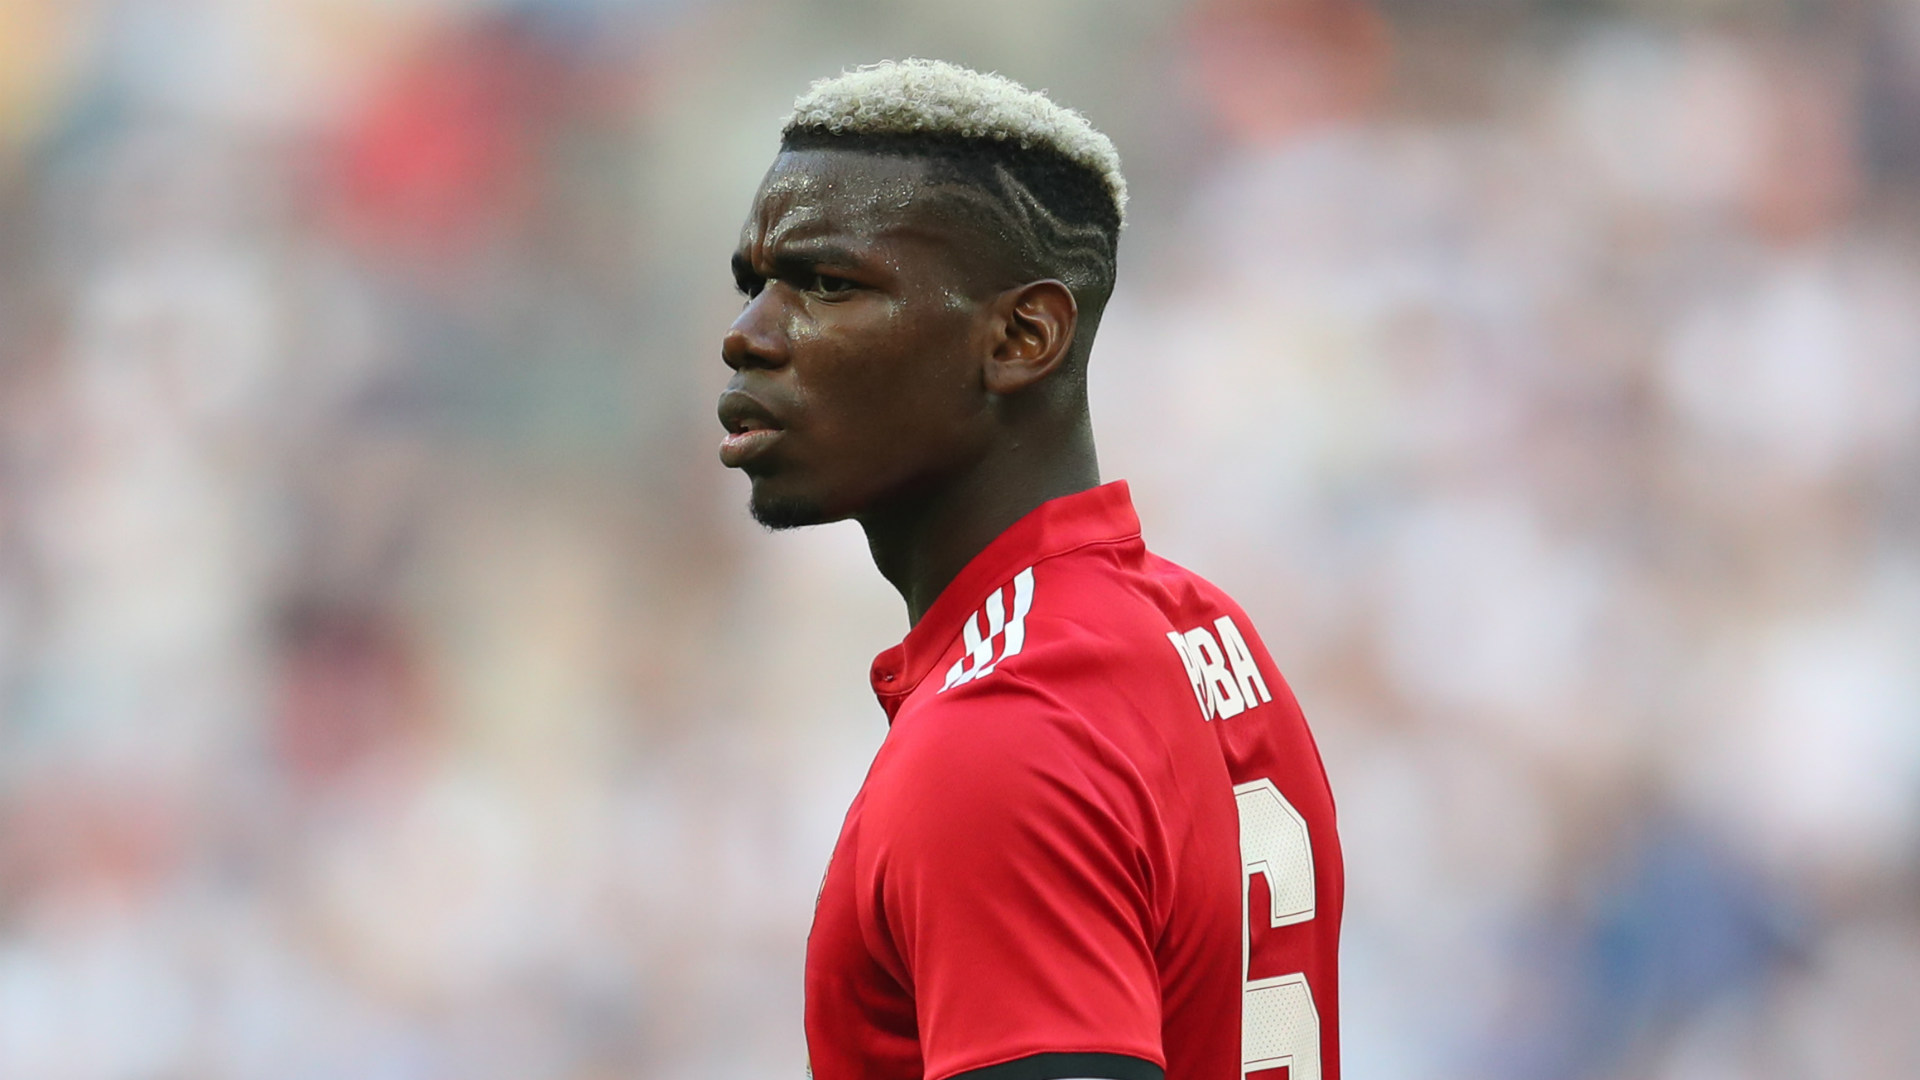 Pogba says he is 'judged differently'